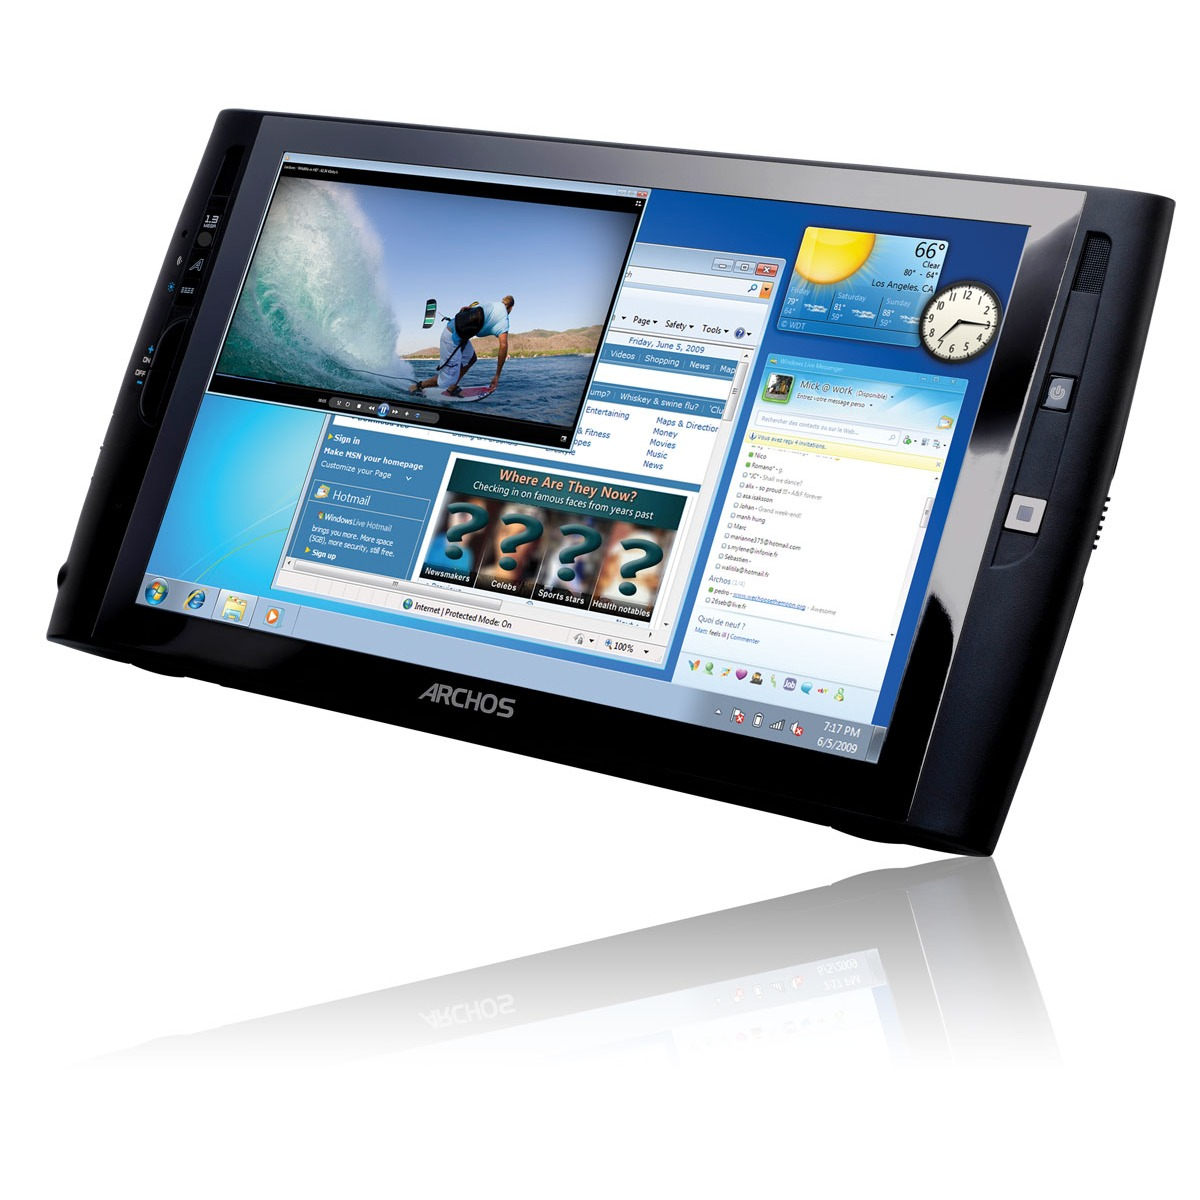 archos 9 pctablet intel atom z510 1 go 8 9 tablette tactile archos sur ldlc. Black Bedroom Furniture Sets. Home Design Ideas